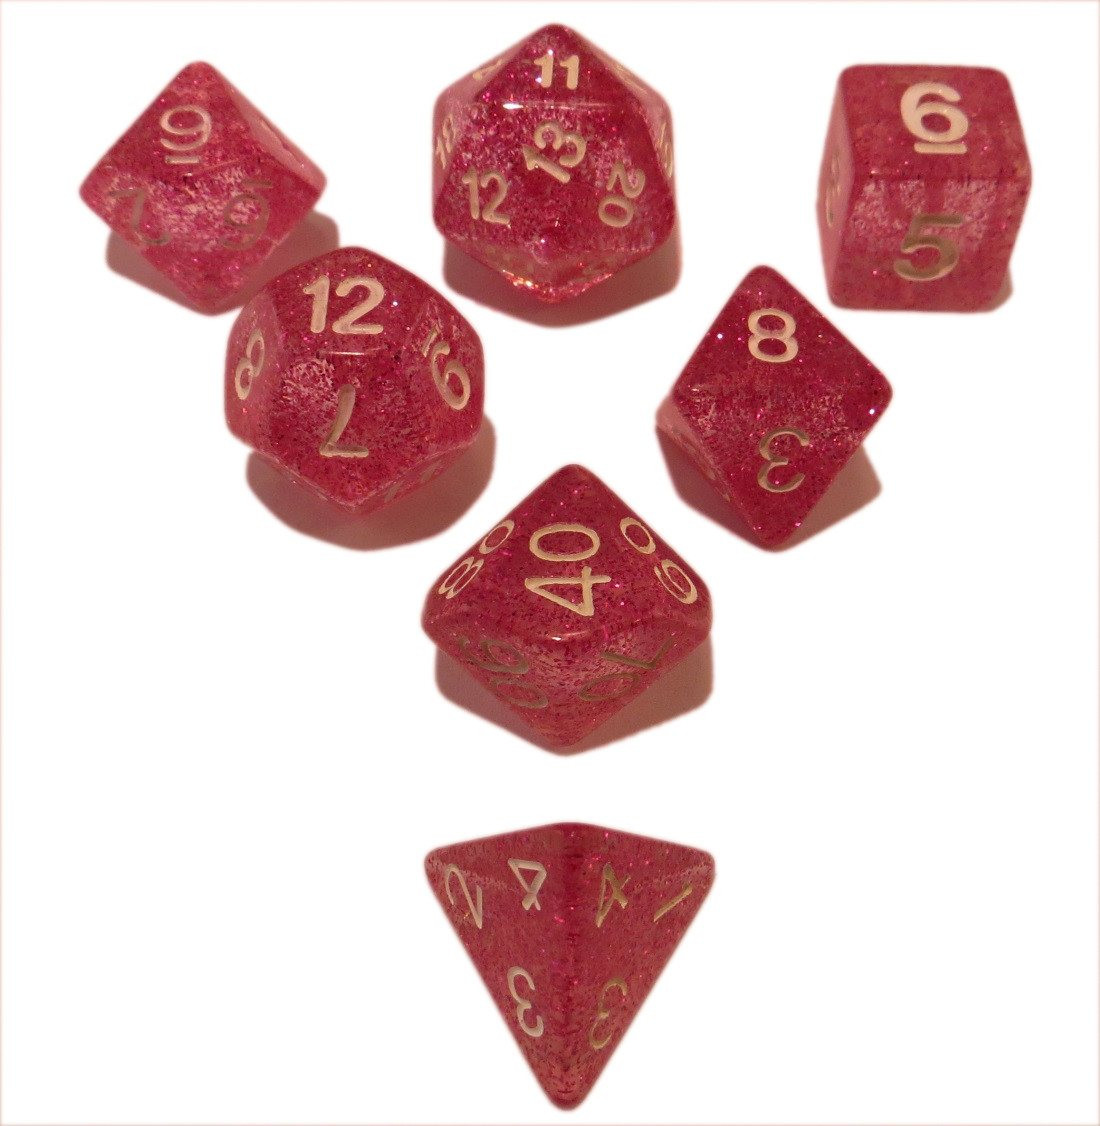 Pink Glitter - Pack of 7 Polyhedral Dice (7 Die in Set) | Role Playing Game Dice | D4, D6, D8, D10, D%, D12, and D20 -